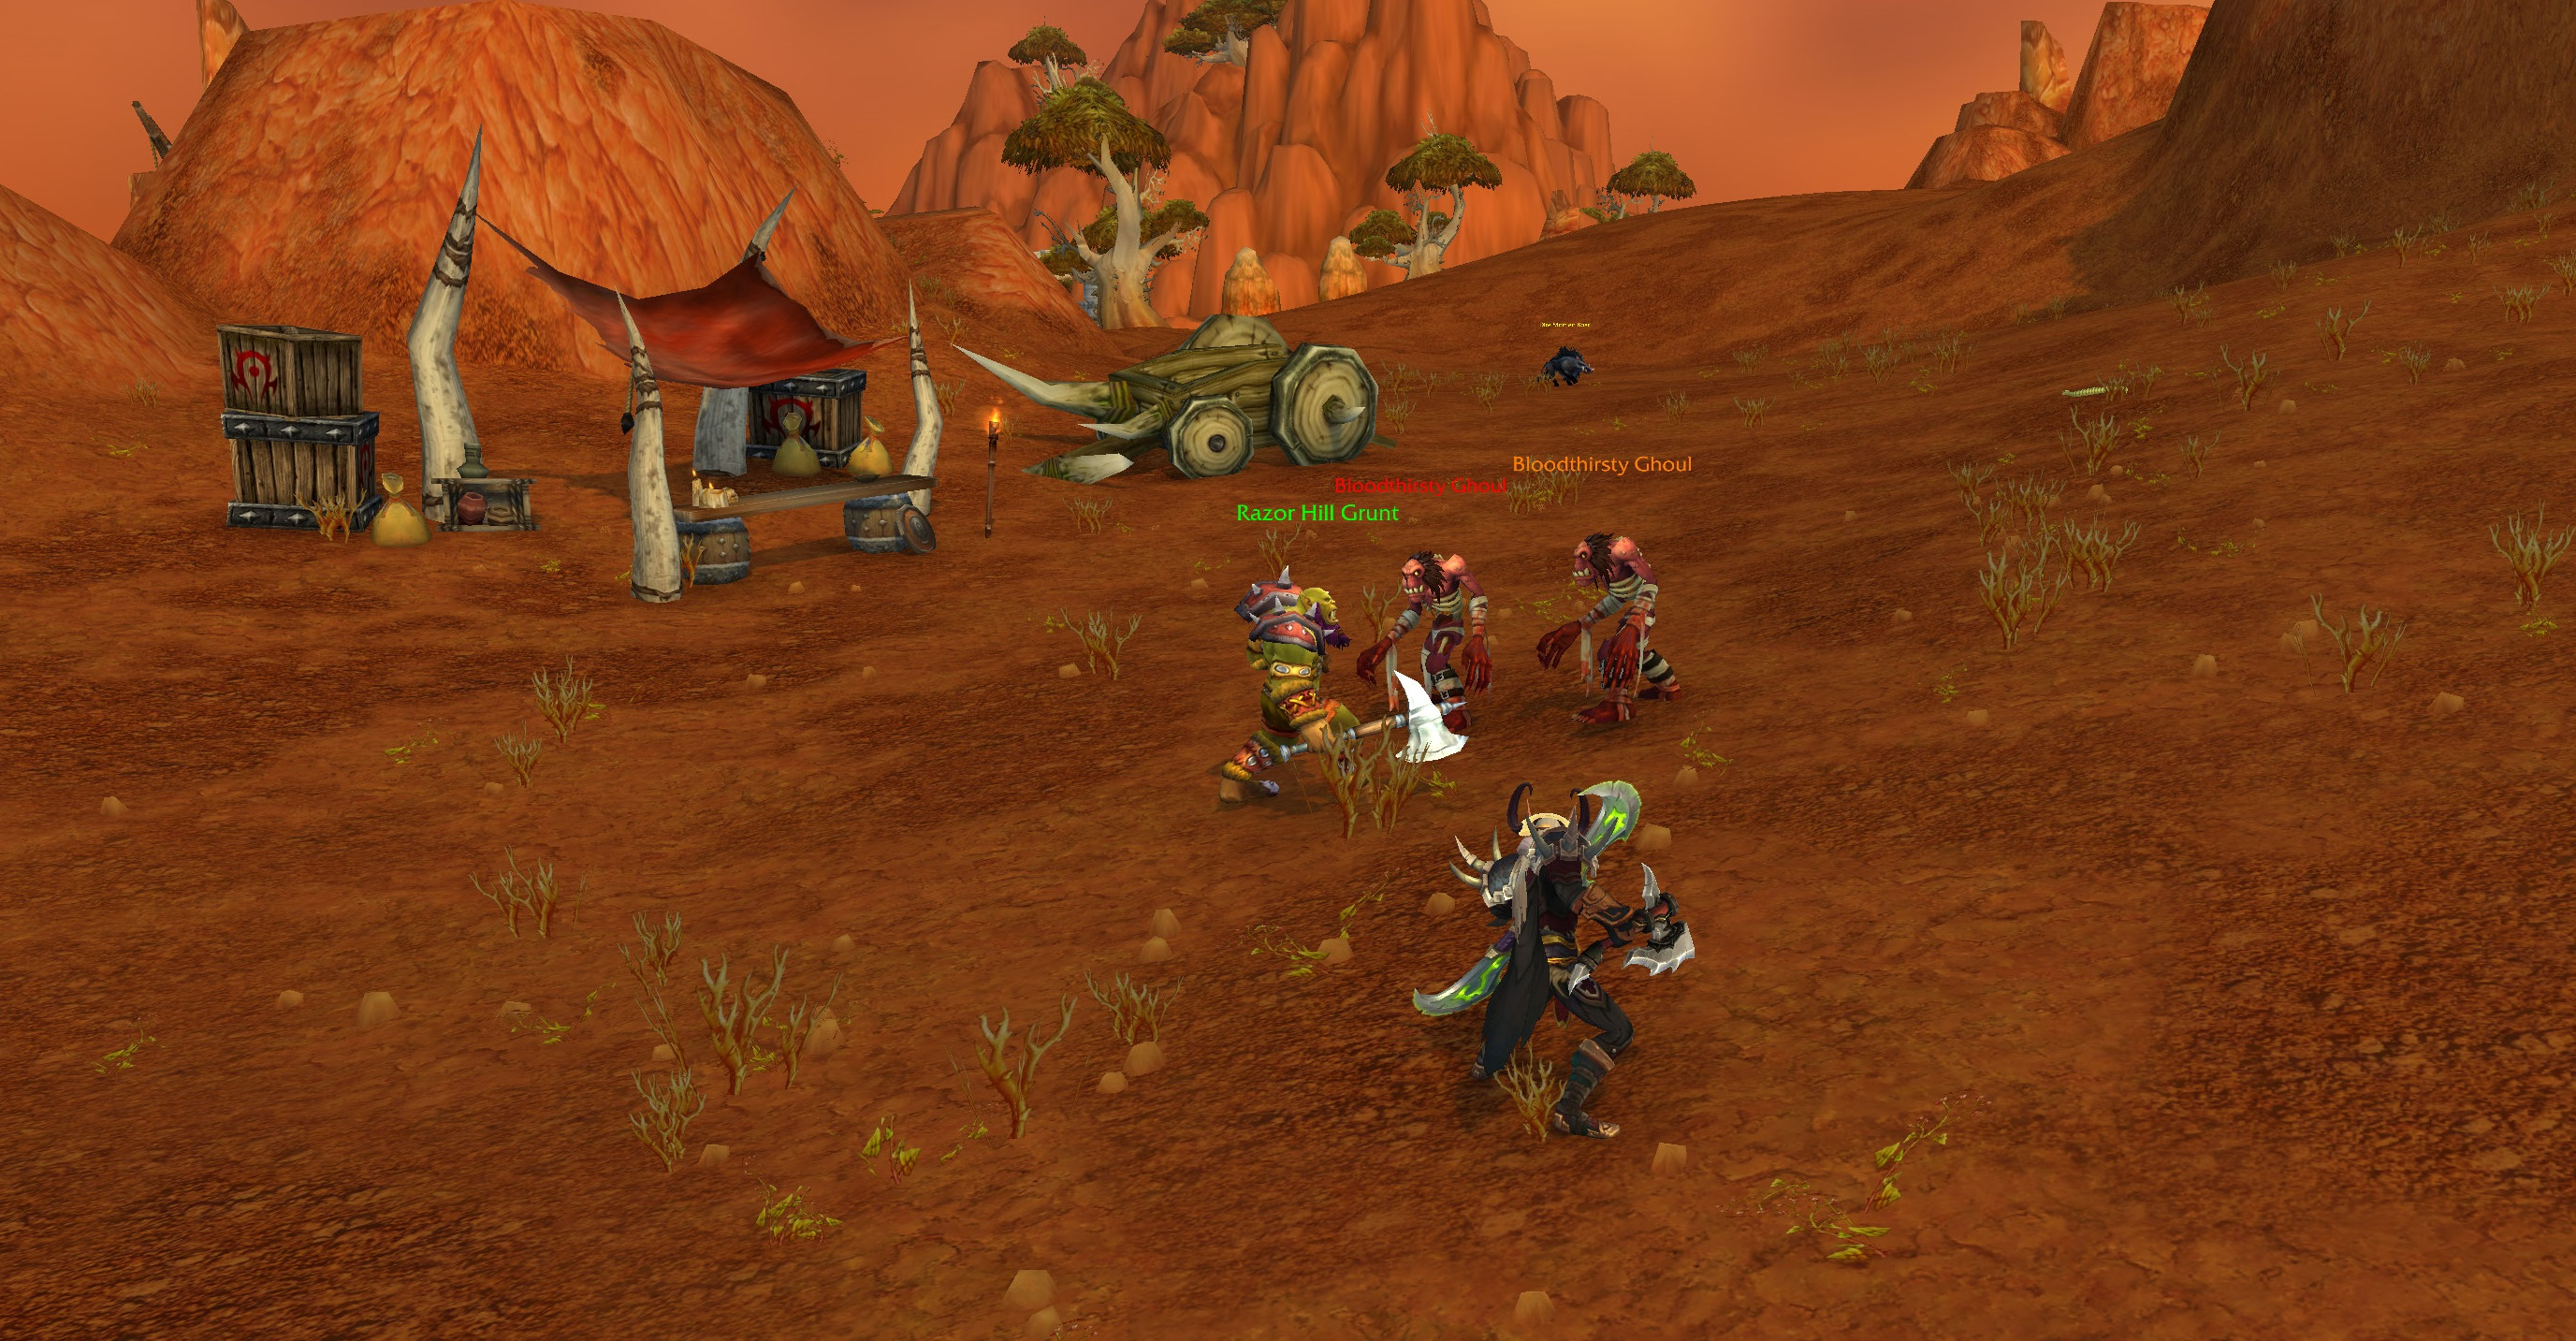 World of Warcraft Shadowlands' pre-launch event is live, and it's pretty fun screenshot